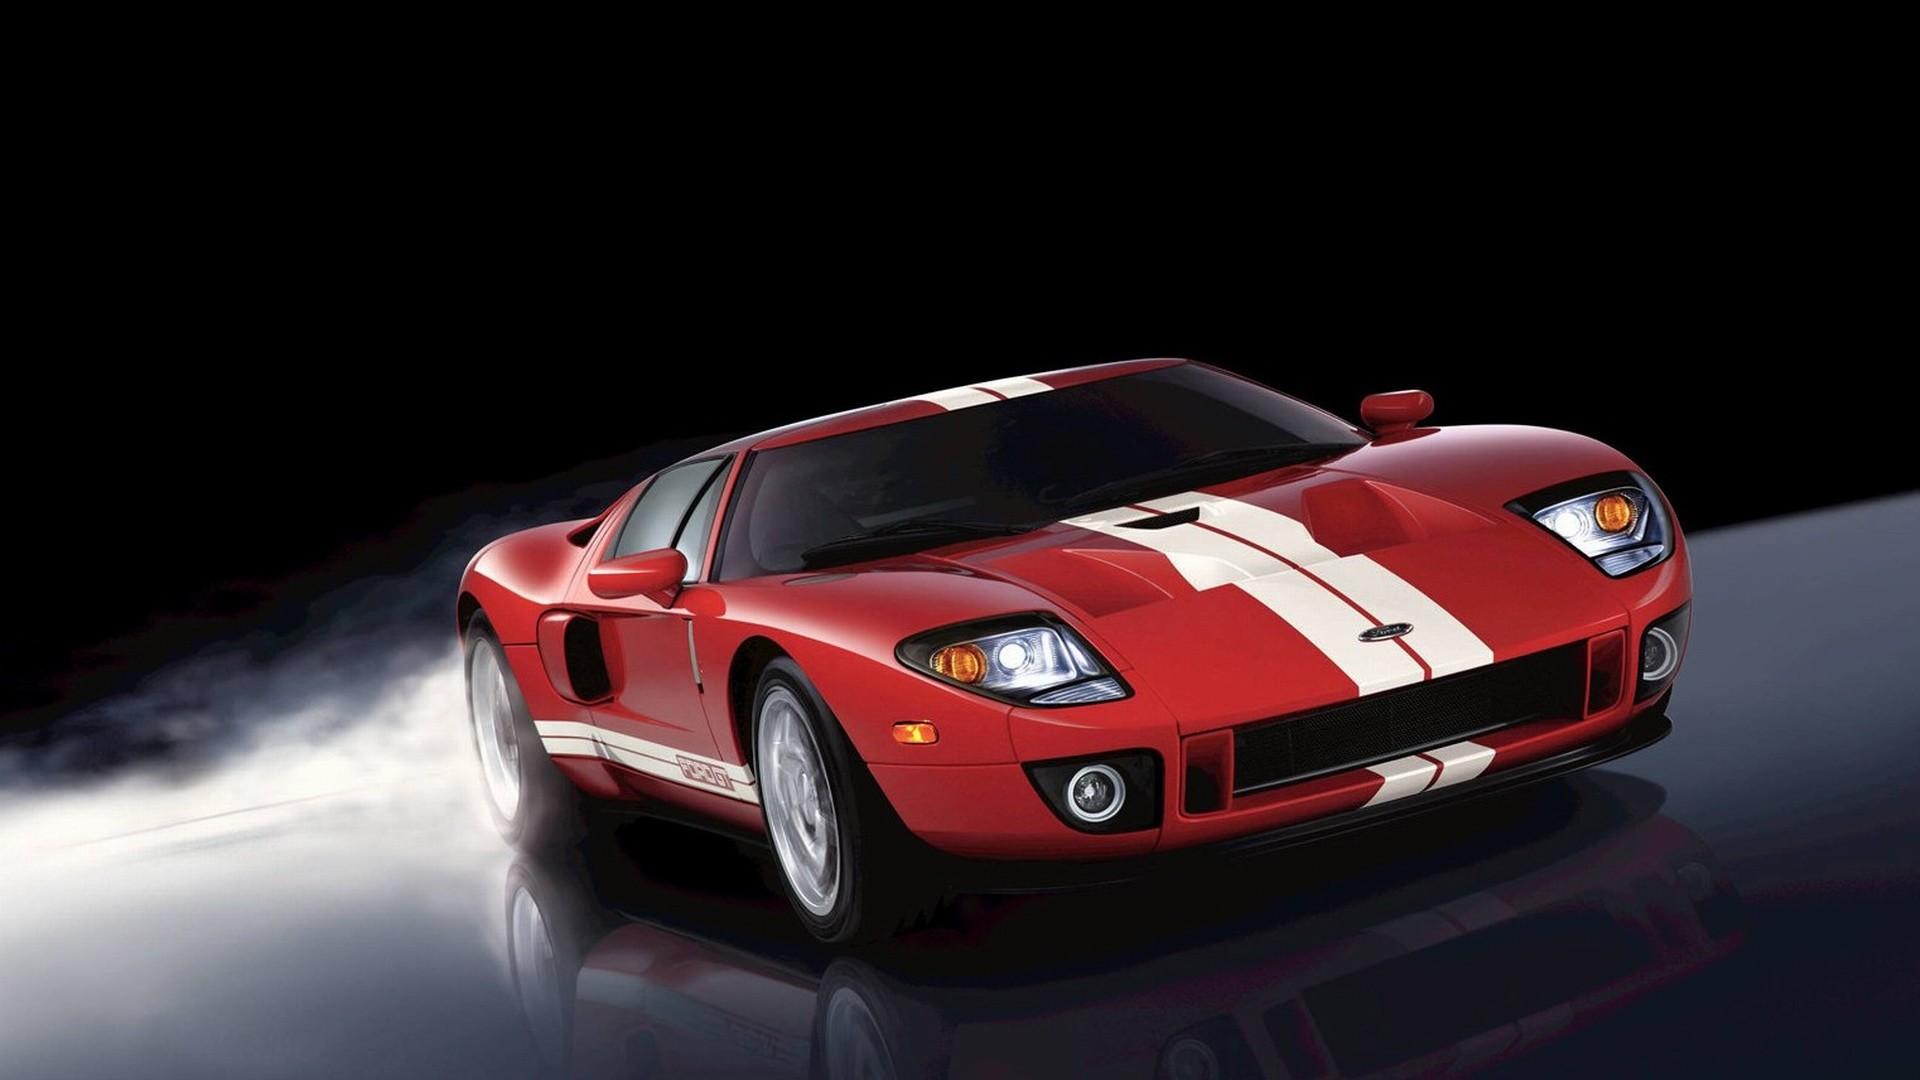 Ford GT 2005 04 1920x1080 WallpapersFord GT 1920x1080 Wallpapers 1920x1080